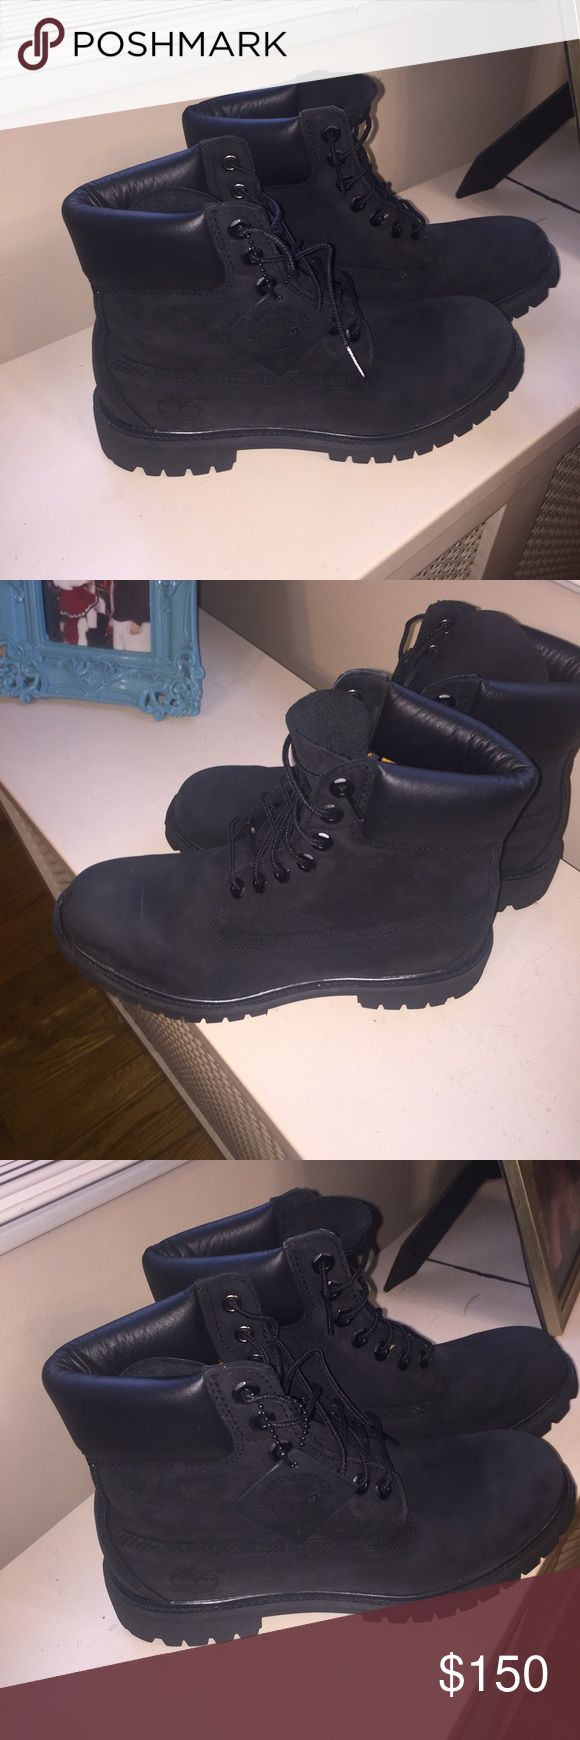 Black suede waterproof timberlands Just like new only used once size 7.5 Men Timberland Shoes Winter & Rain Boots